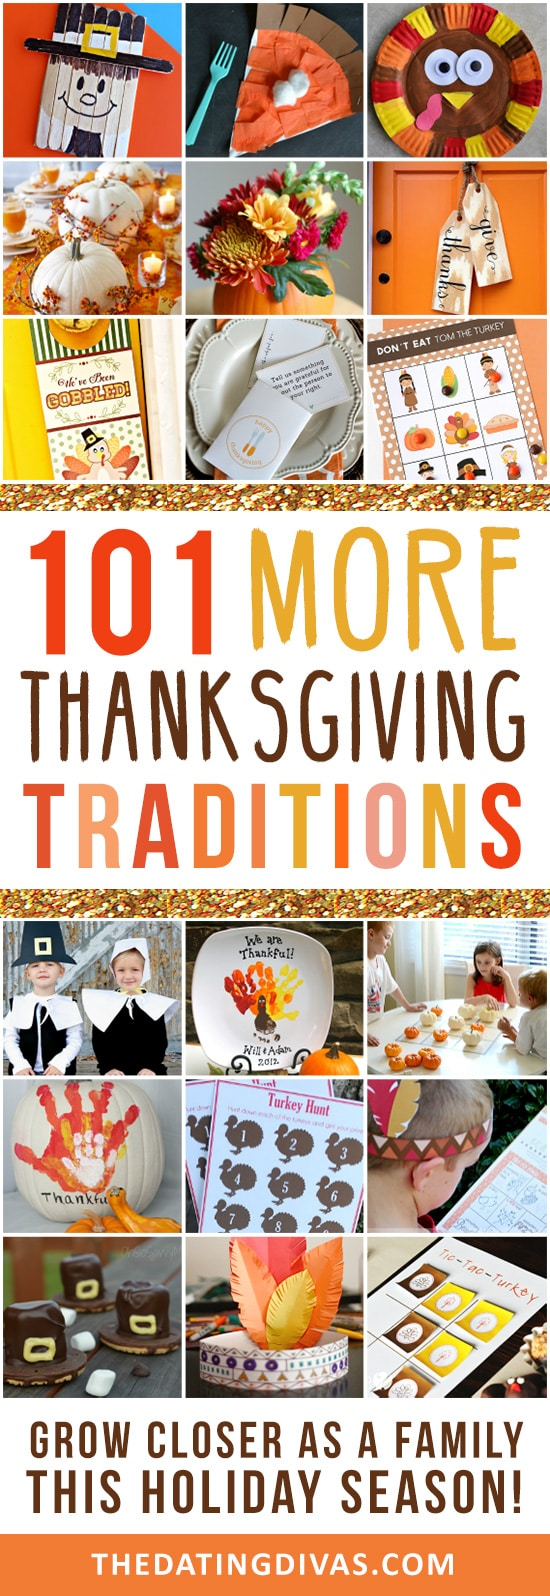 Top Thanksgiving traditions!